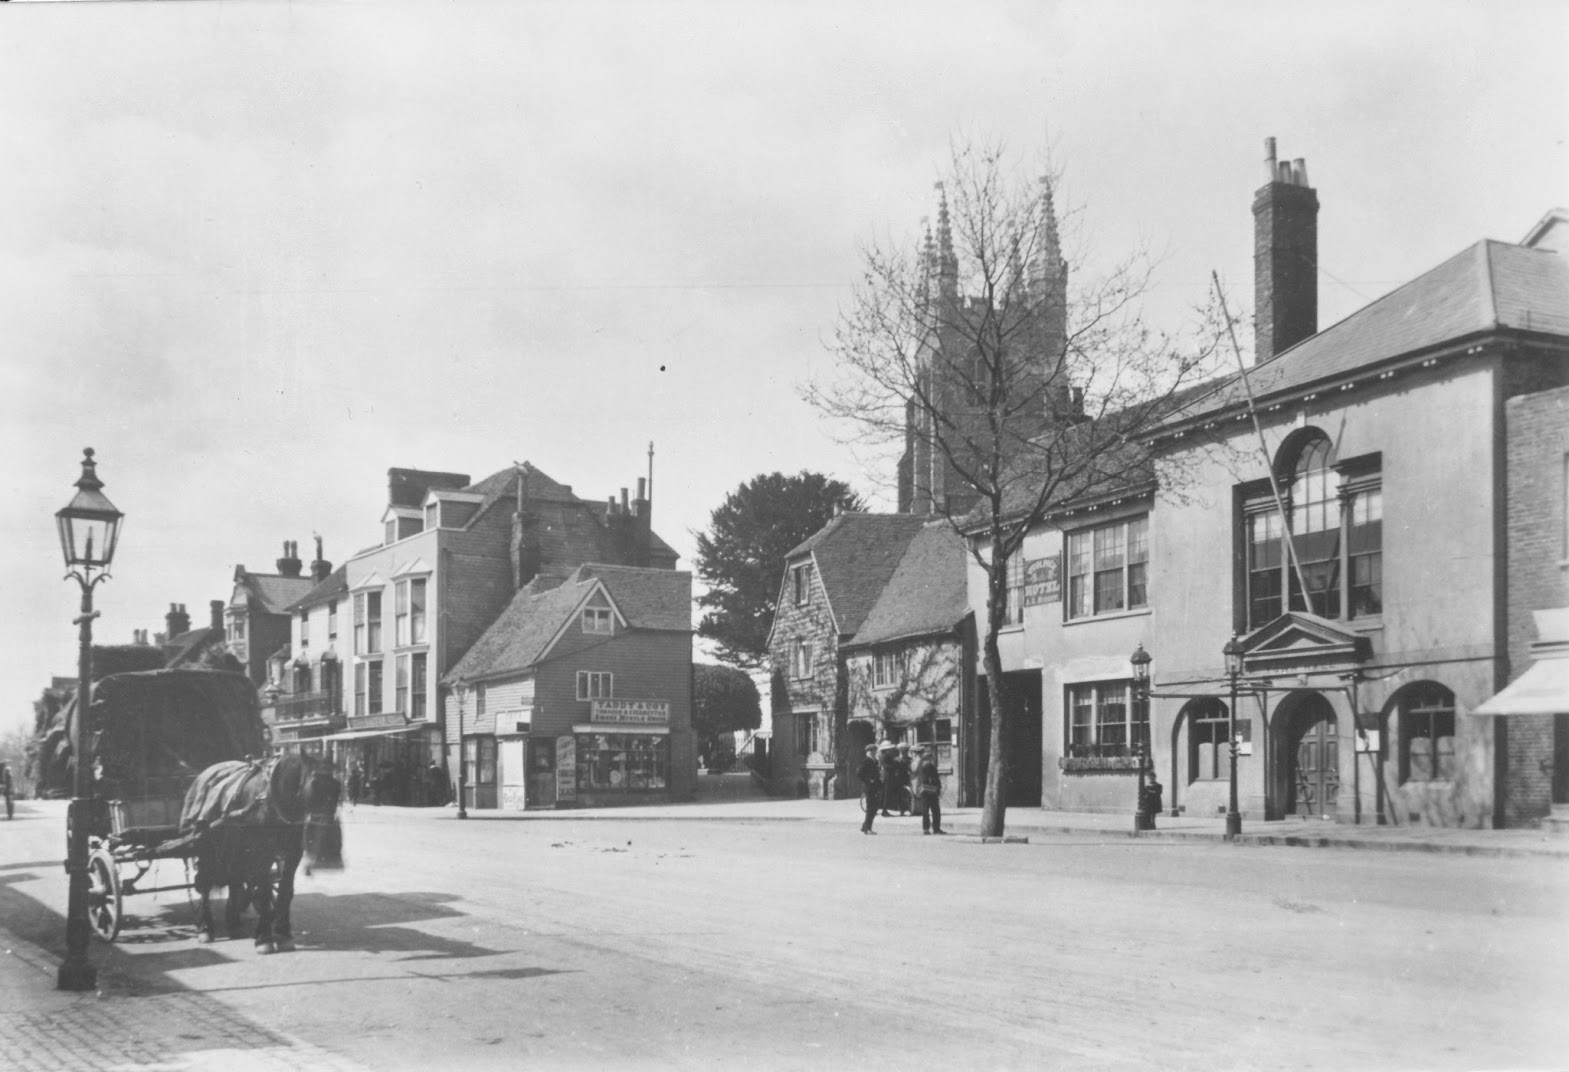 Tenterden Archive photos Woolpack and Town Hall, Tenterden High Street